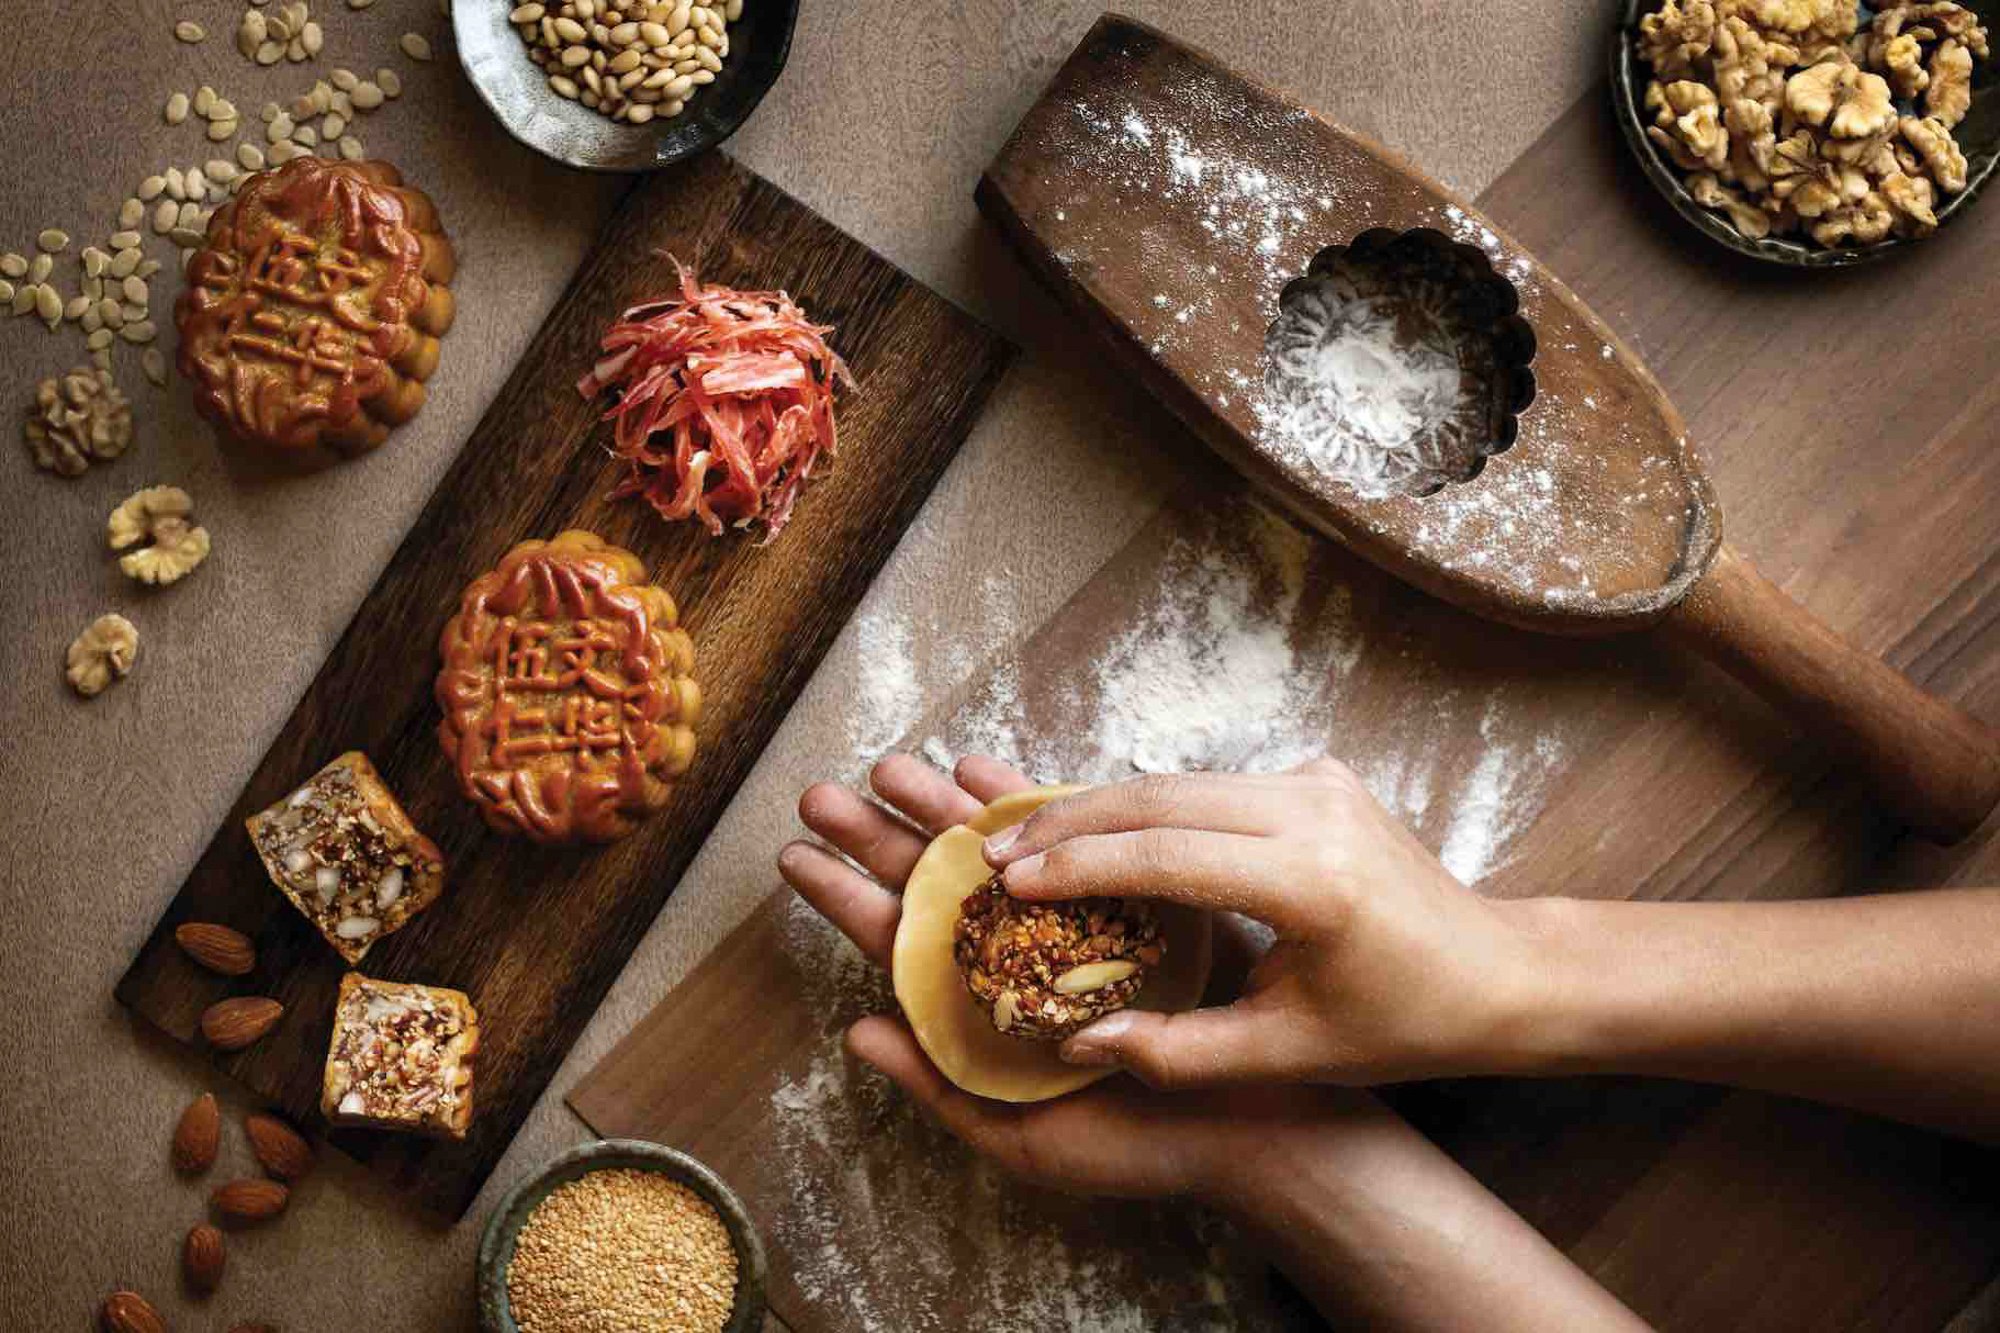 Mandarin-Orchard-Singapore-Mooncakes-Baked-Mooncake-with-Mixed-Nuts-and-Jamón-Ibérico.jpg